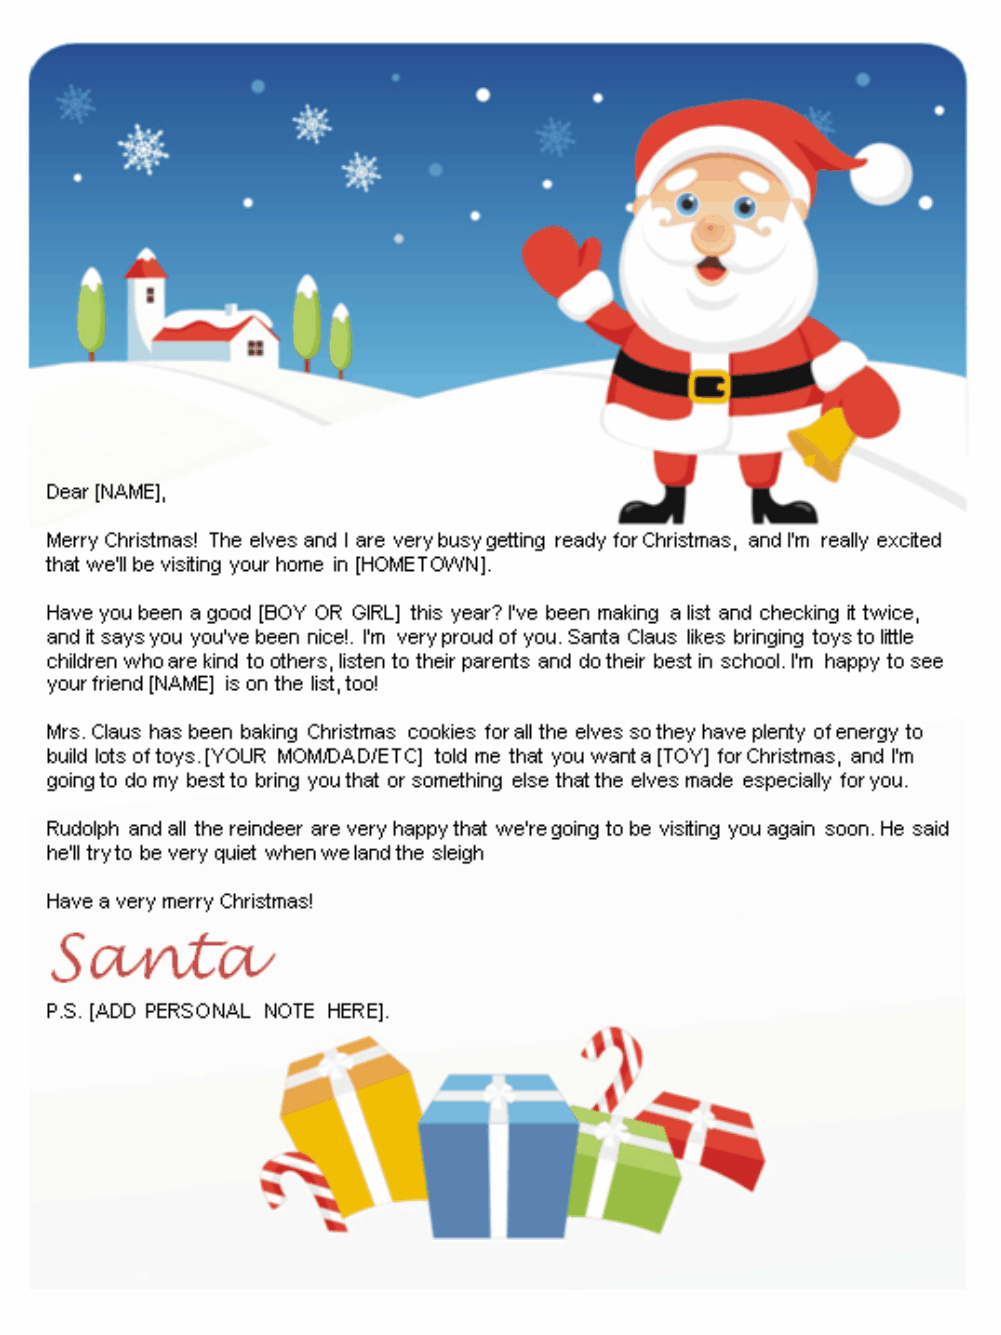 Free Letters From Santa | Santa Letters To Print At Home - Gifts - Free Printable Letters From Santa Claus